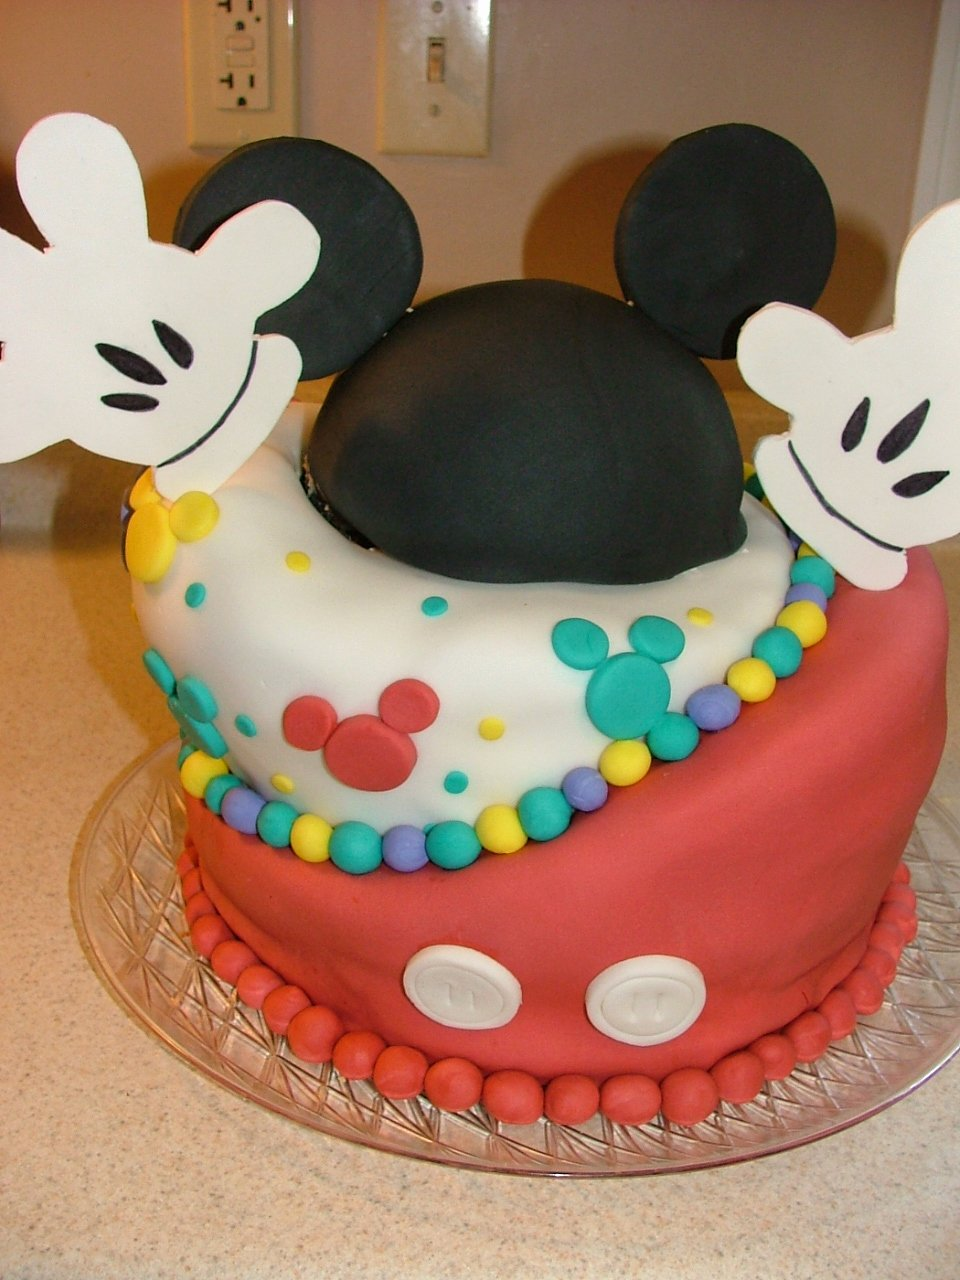 Mickey Mouse Cake Template Free Luxury Mouse Mickey Template Cake Ideas and Designs